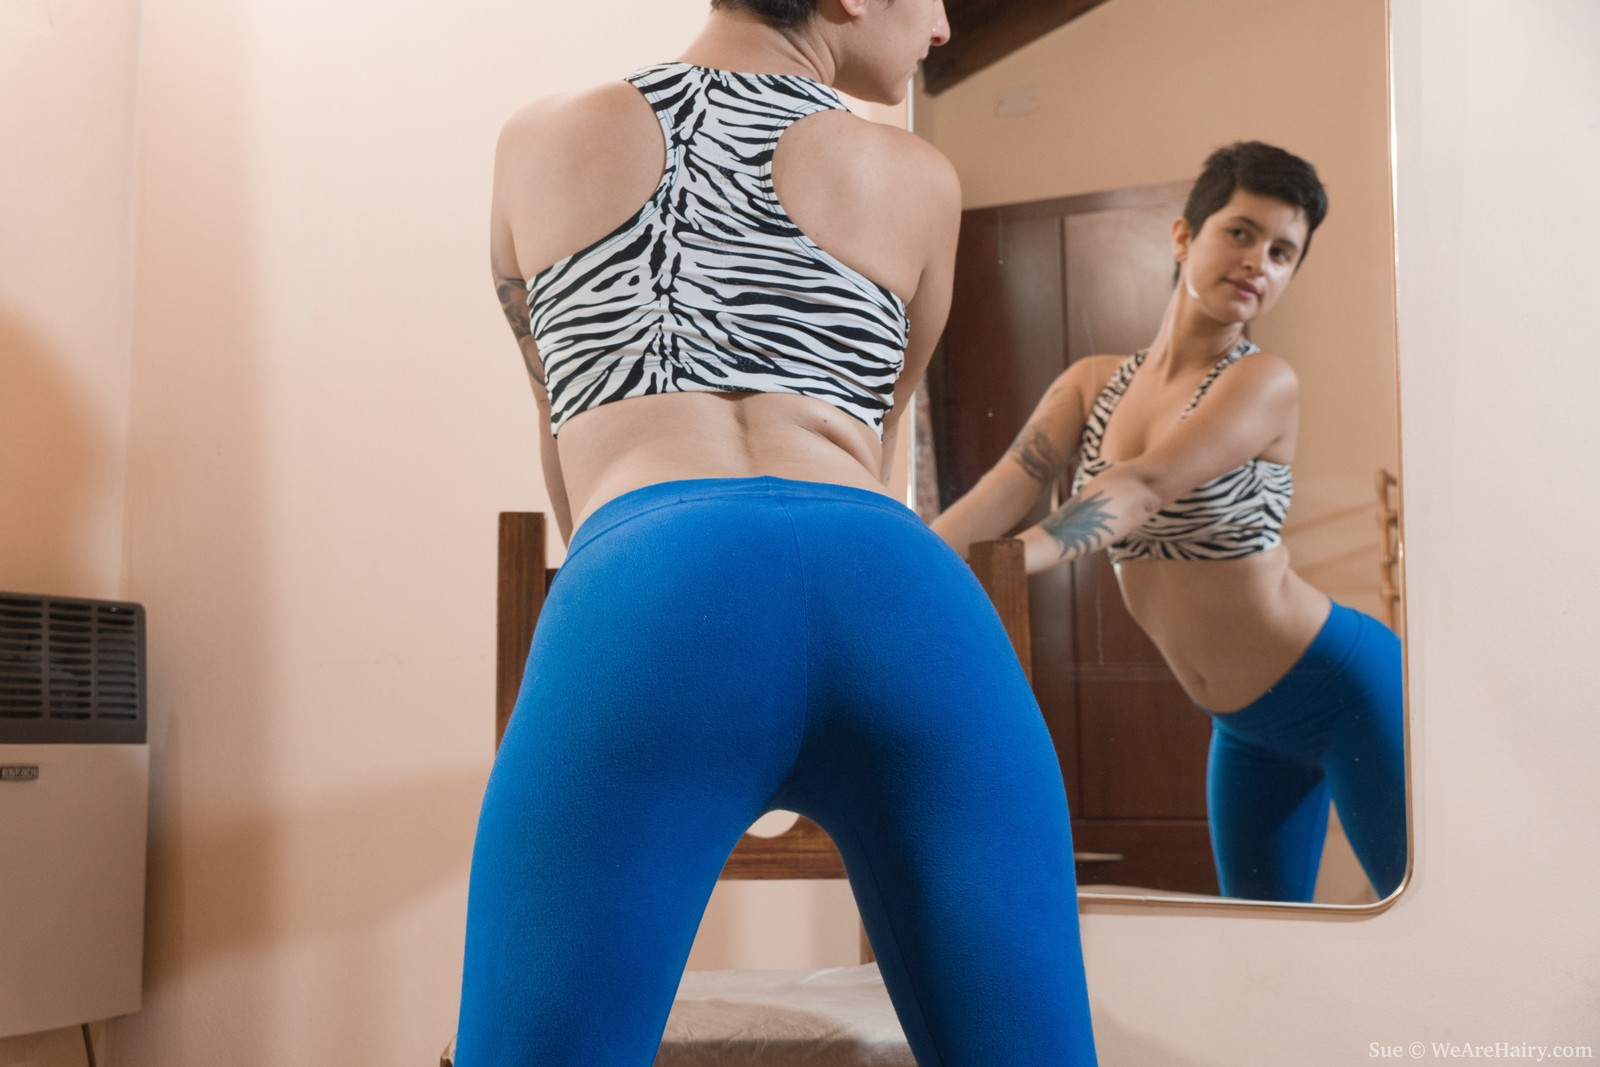 wpid-sue-poses-naked-and-strips-in-front-of-a-mirror2.jpg